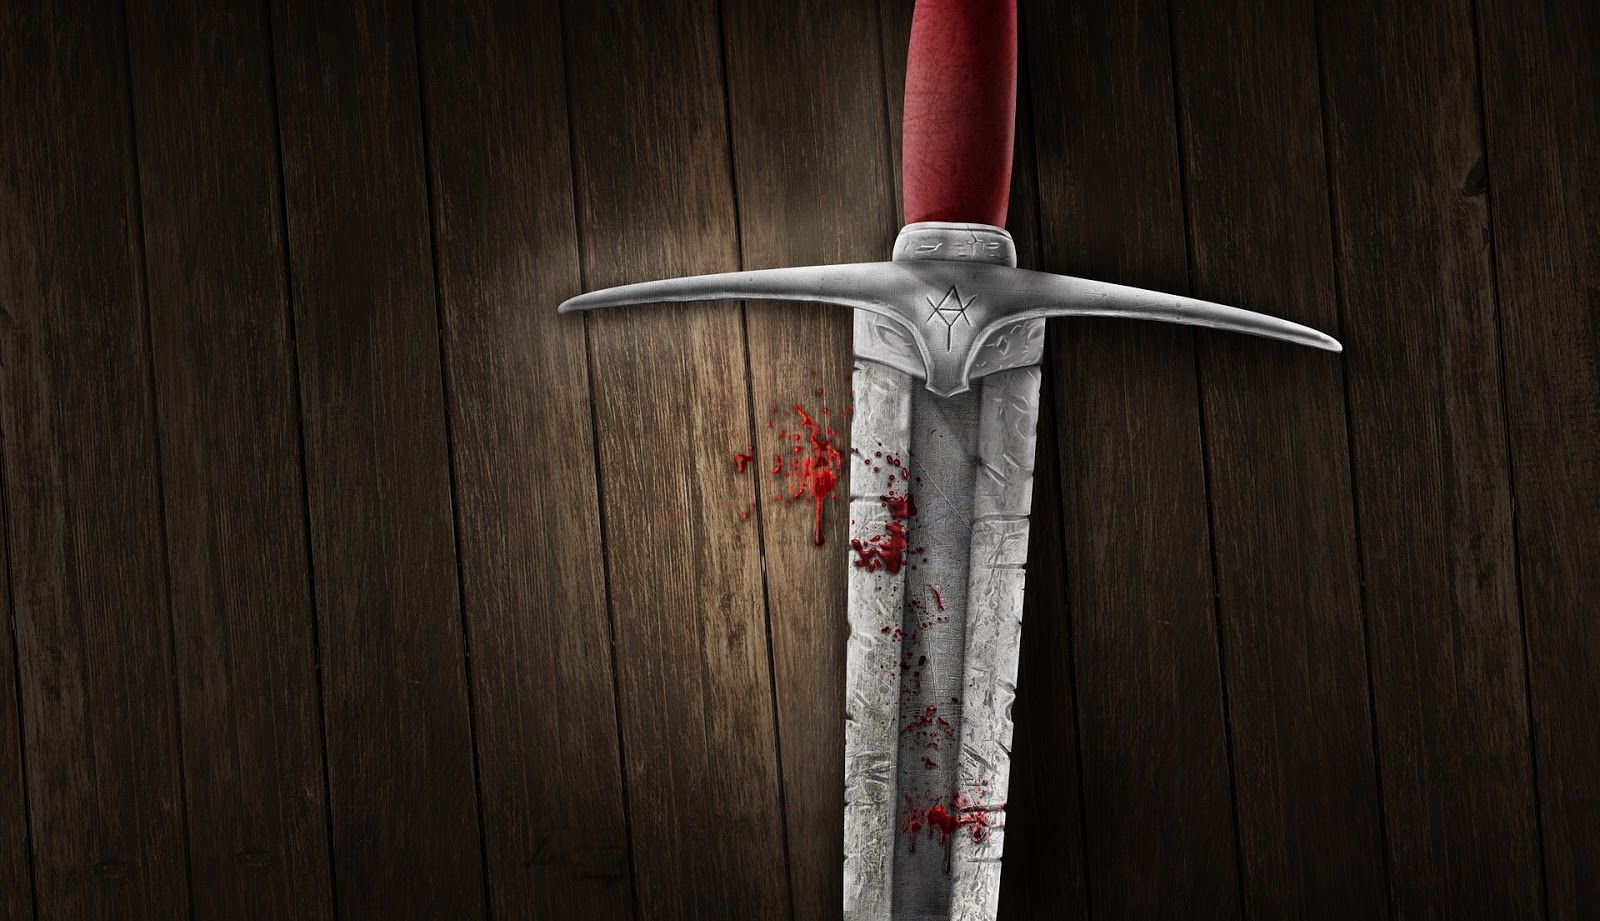 a large sword covered in blood lays in front of a wood wall to illustrate a blog post about bloody british battles